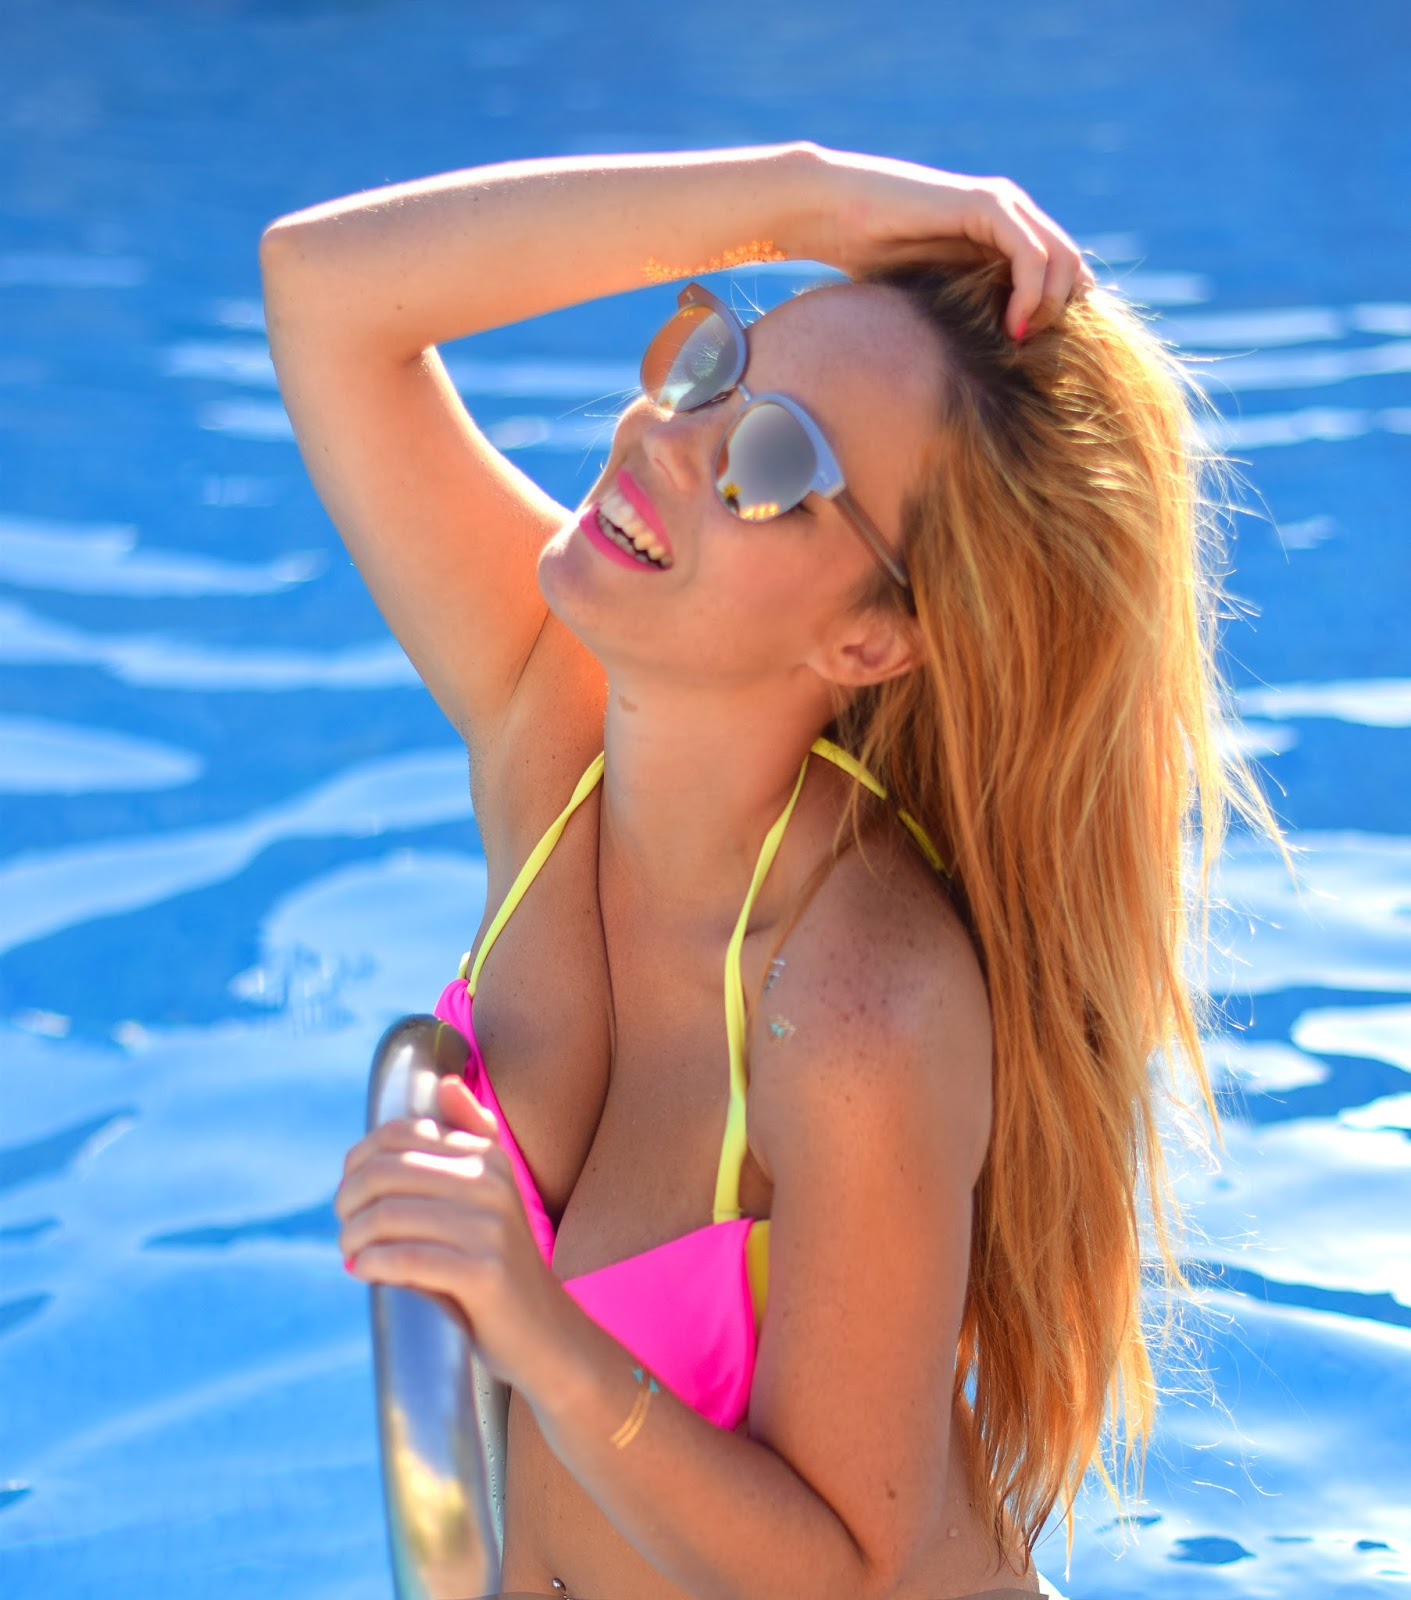 nery hdez, lalalilo, optical H , oliver peoples, blondedge, bikini, summer look